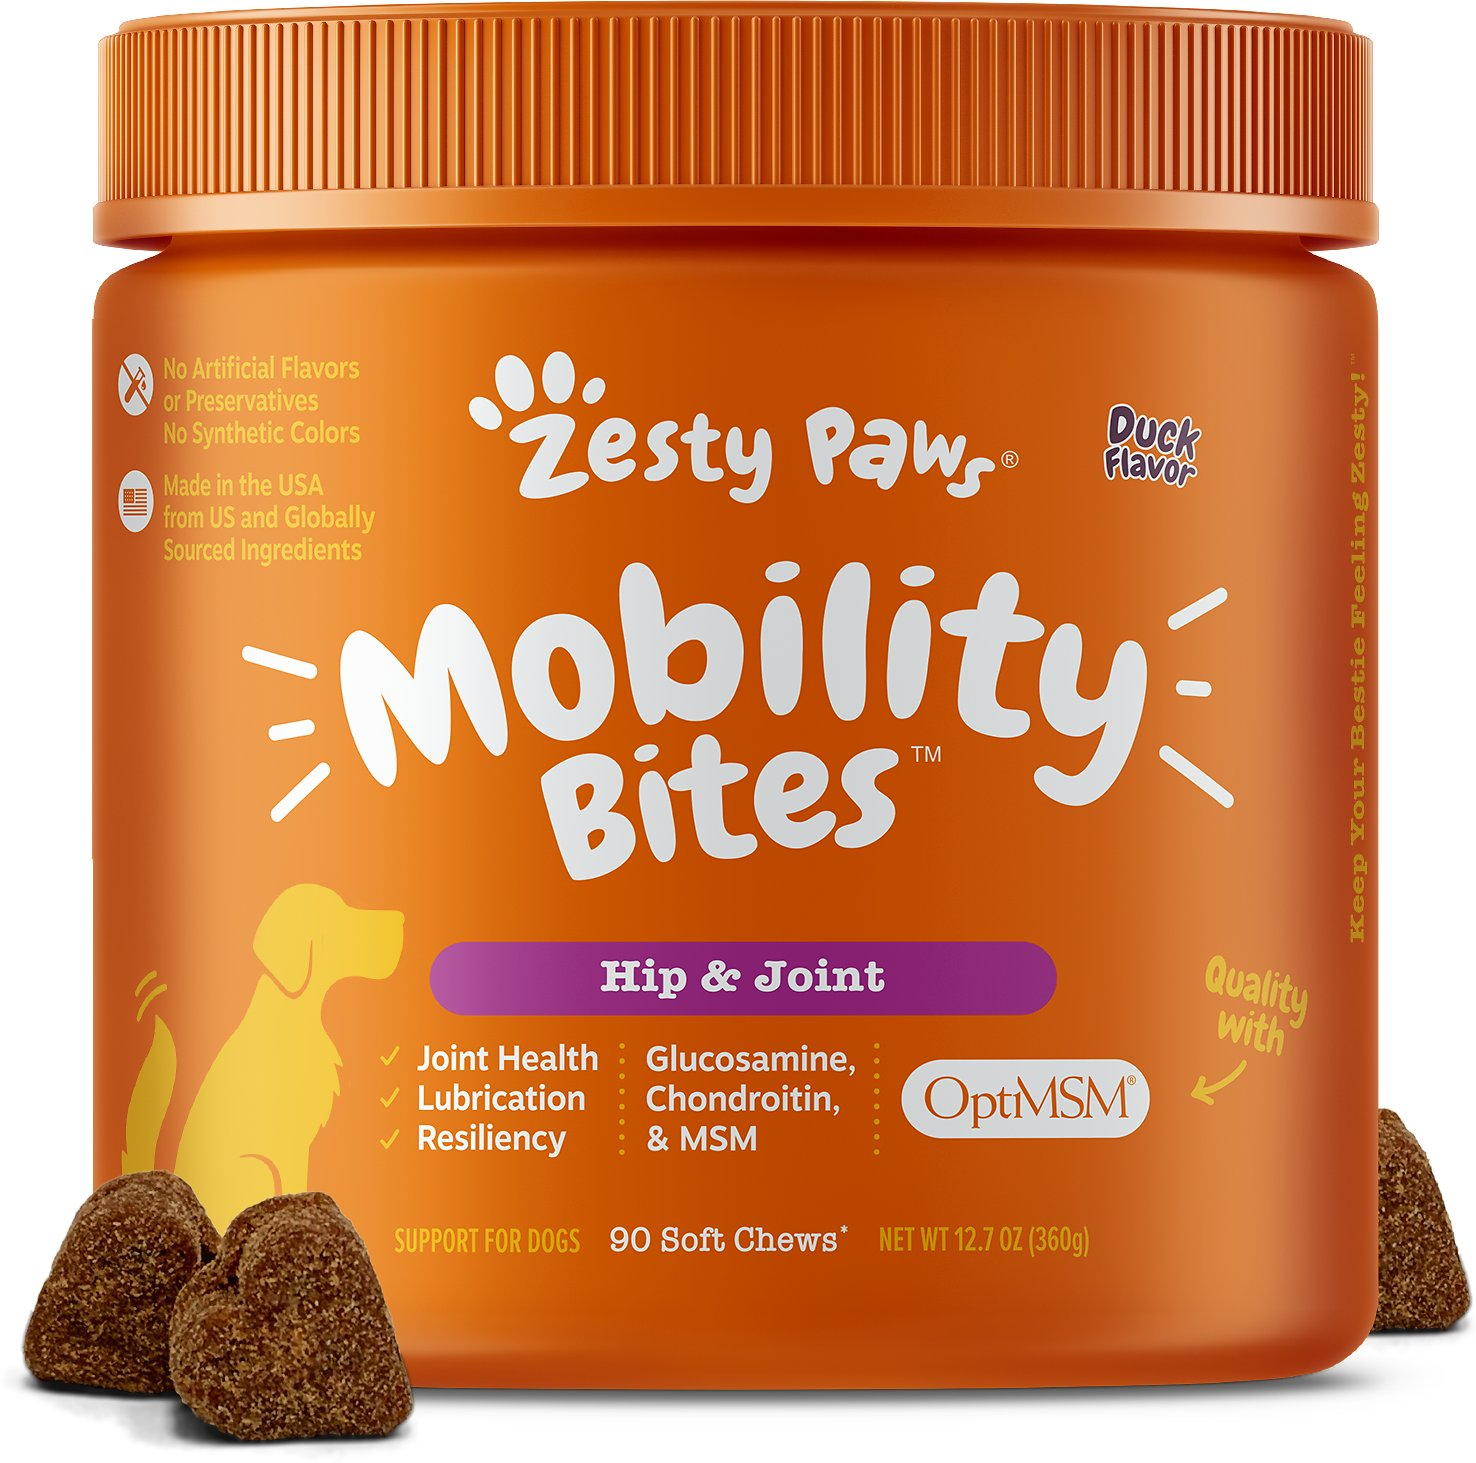 Zesty Paws Mobility Bites Hip & Joint Support Duck Flavor Chews with  Glucosamine, Chondroitin & MSM for Dogs, 90 count